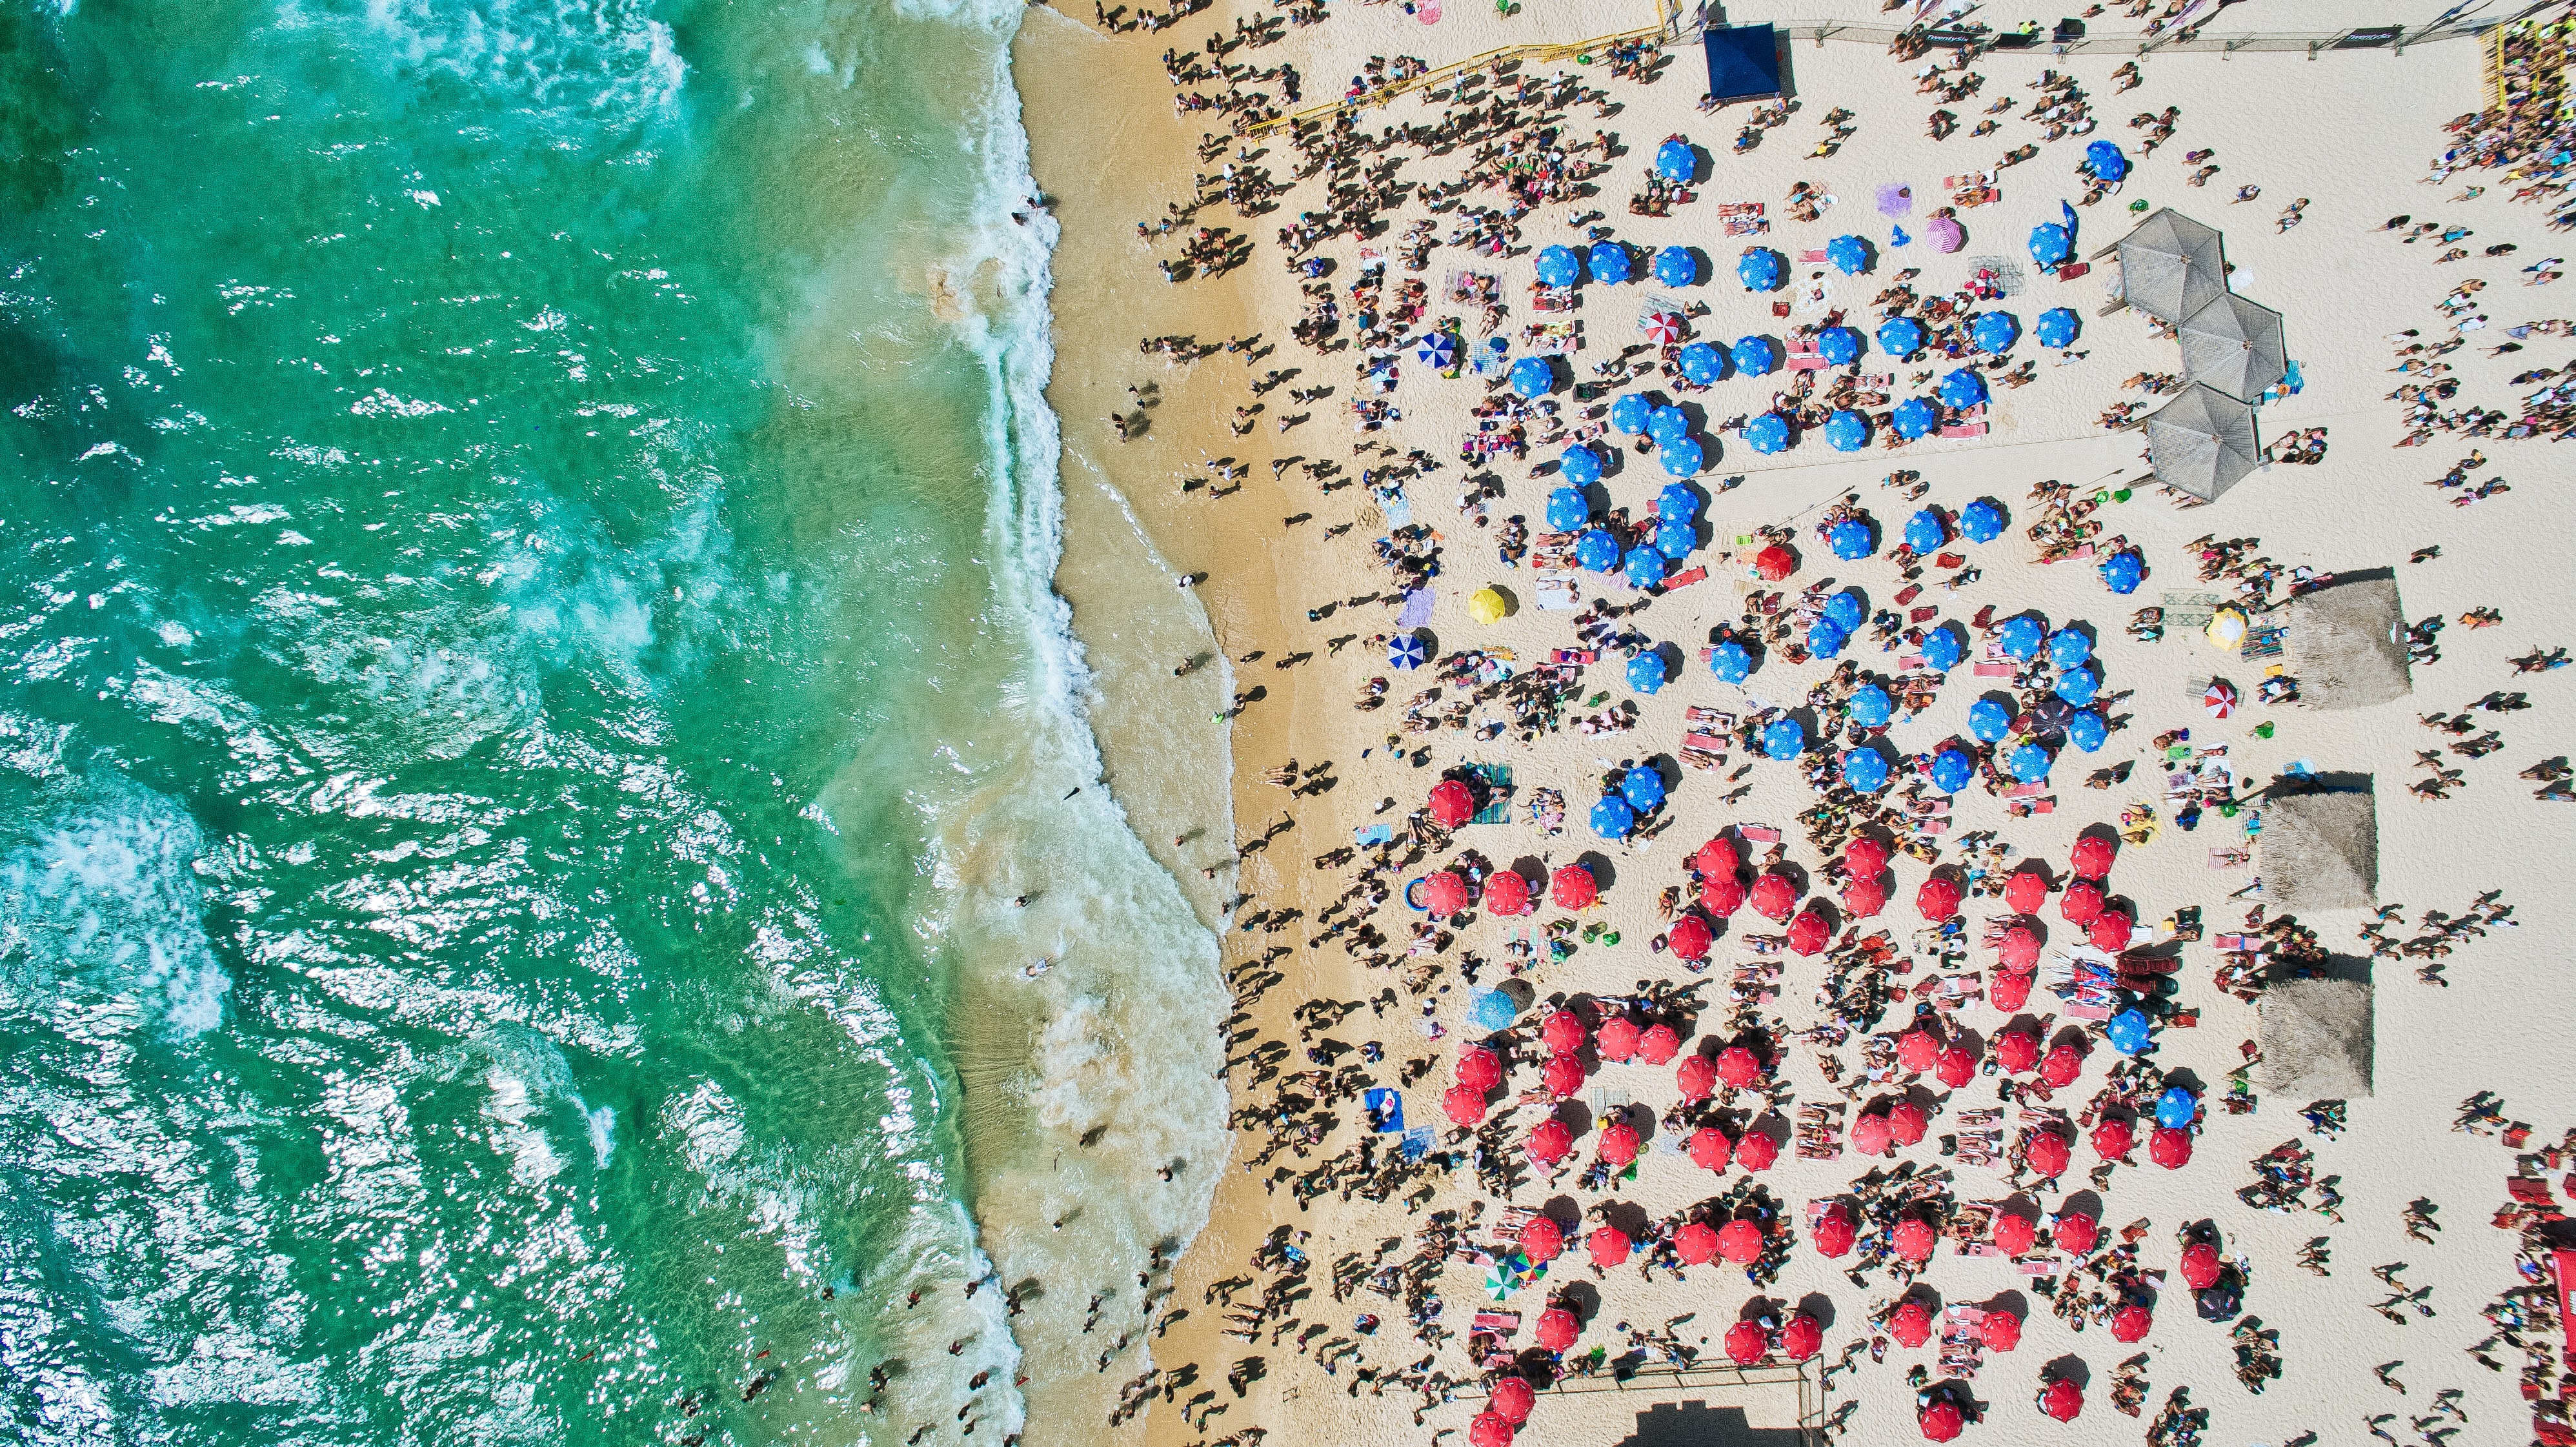 aerial view of people at the beach